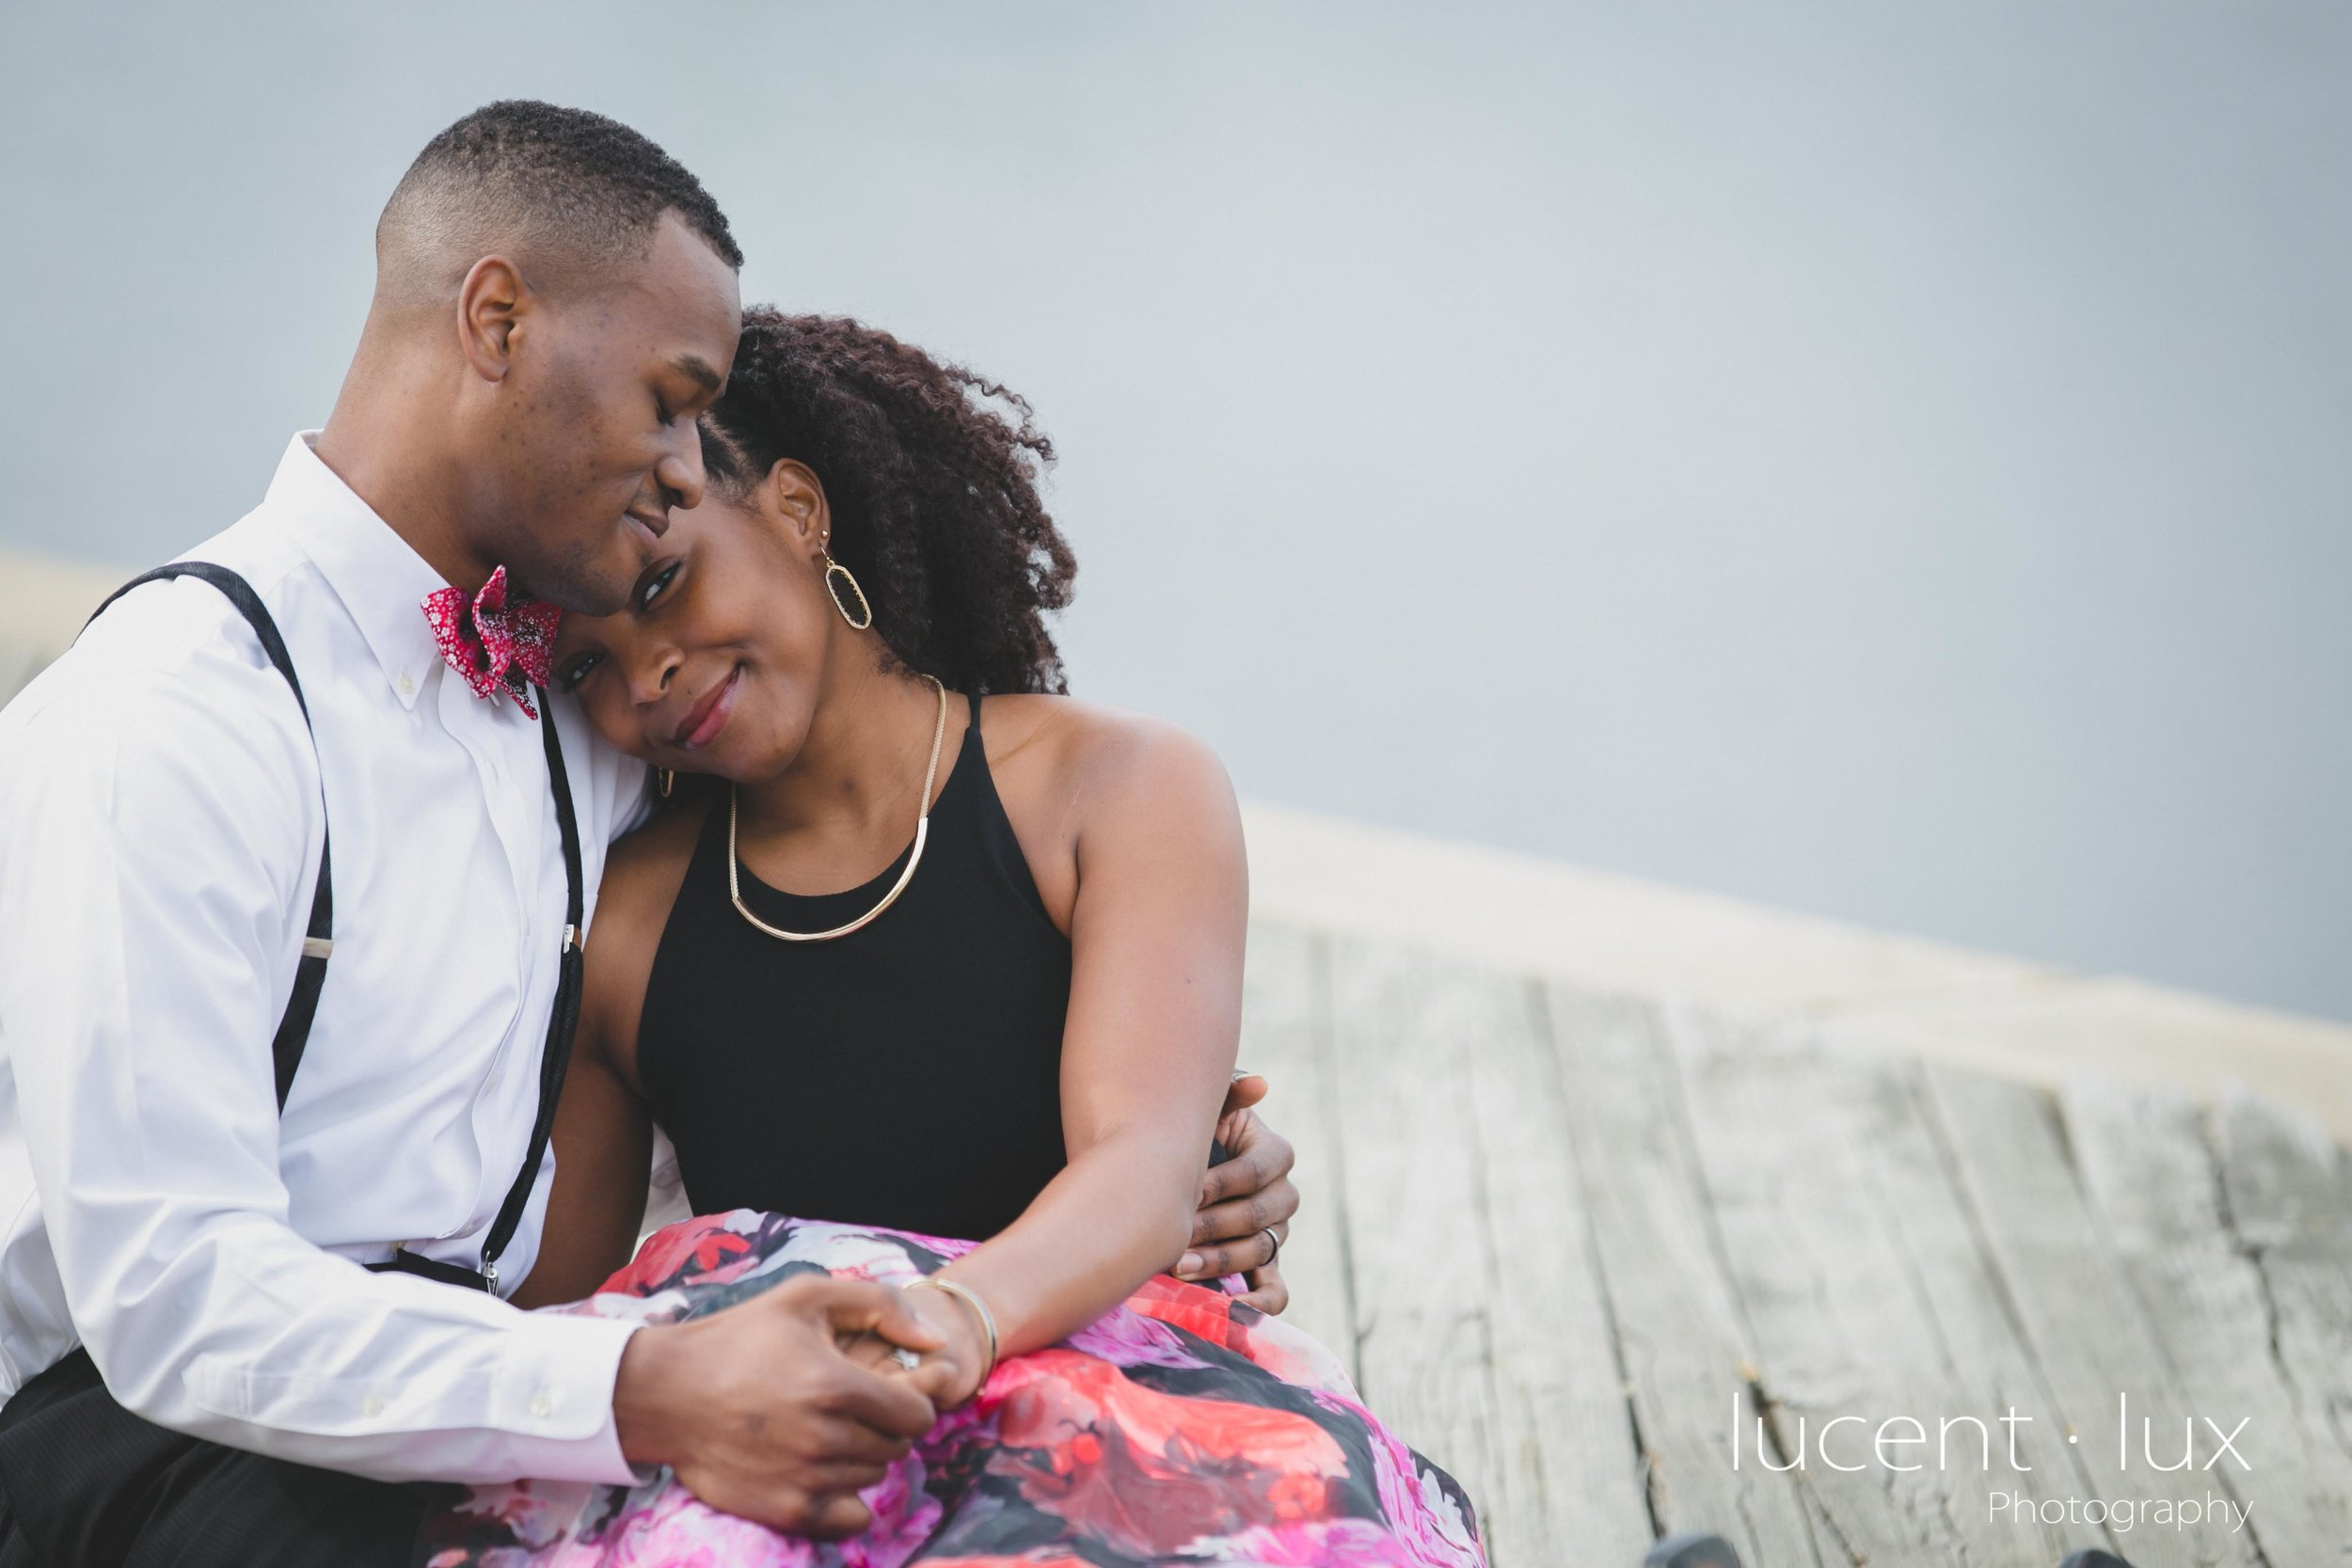 Fells-Point-Engagement-Photography-Maryland-Baltimore-Couple-109.jpg